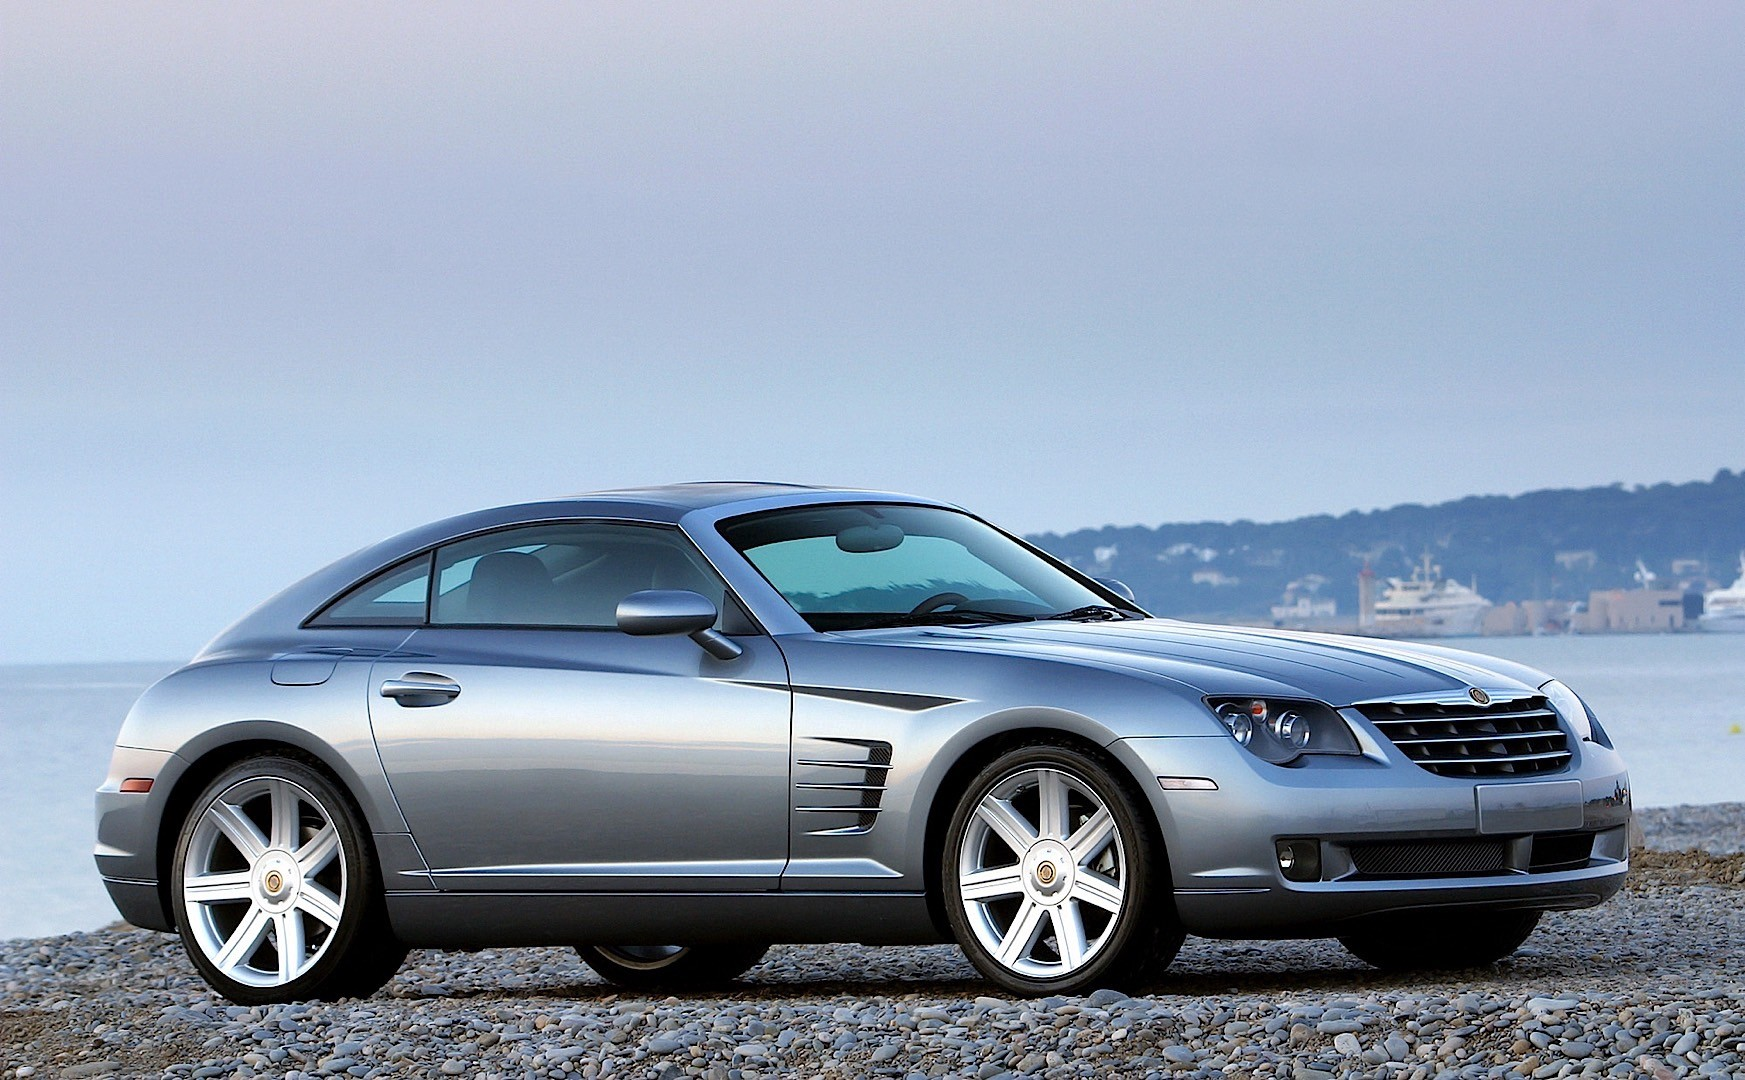 CHRYSLER Crossfire - 2007, 2008 - autoevolution